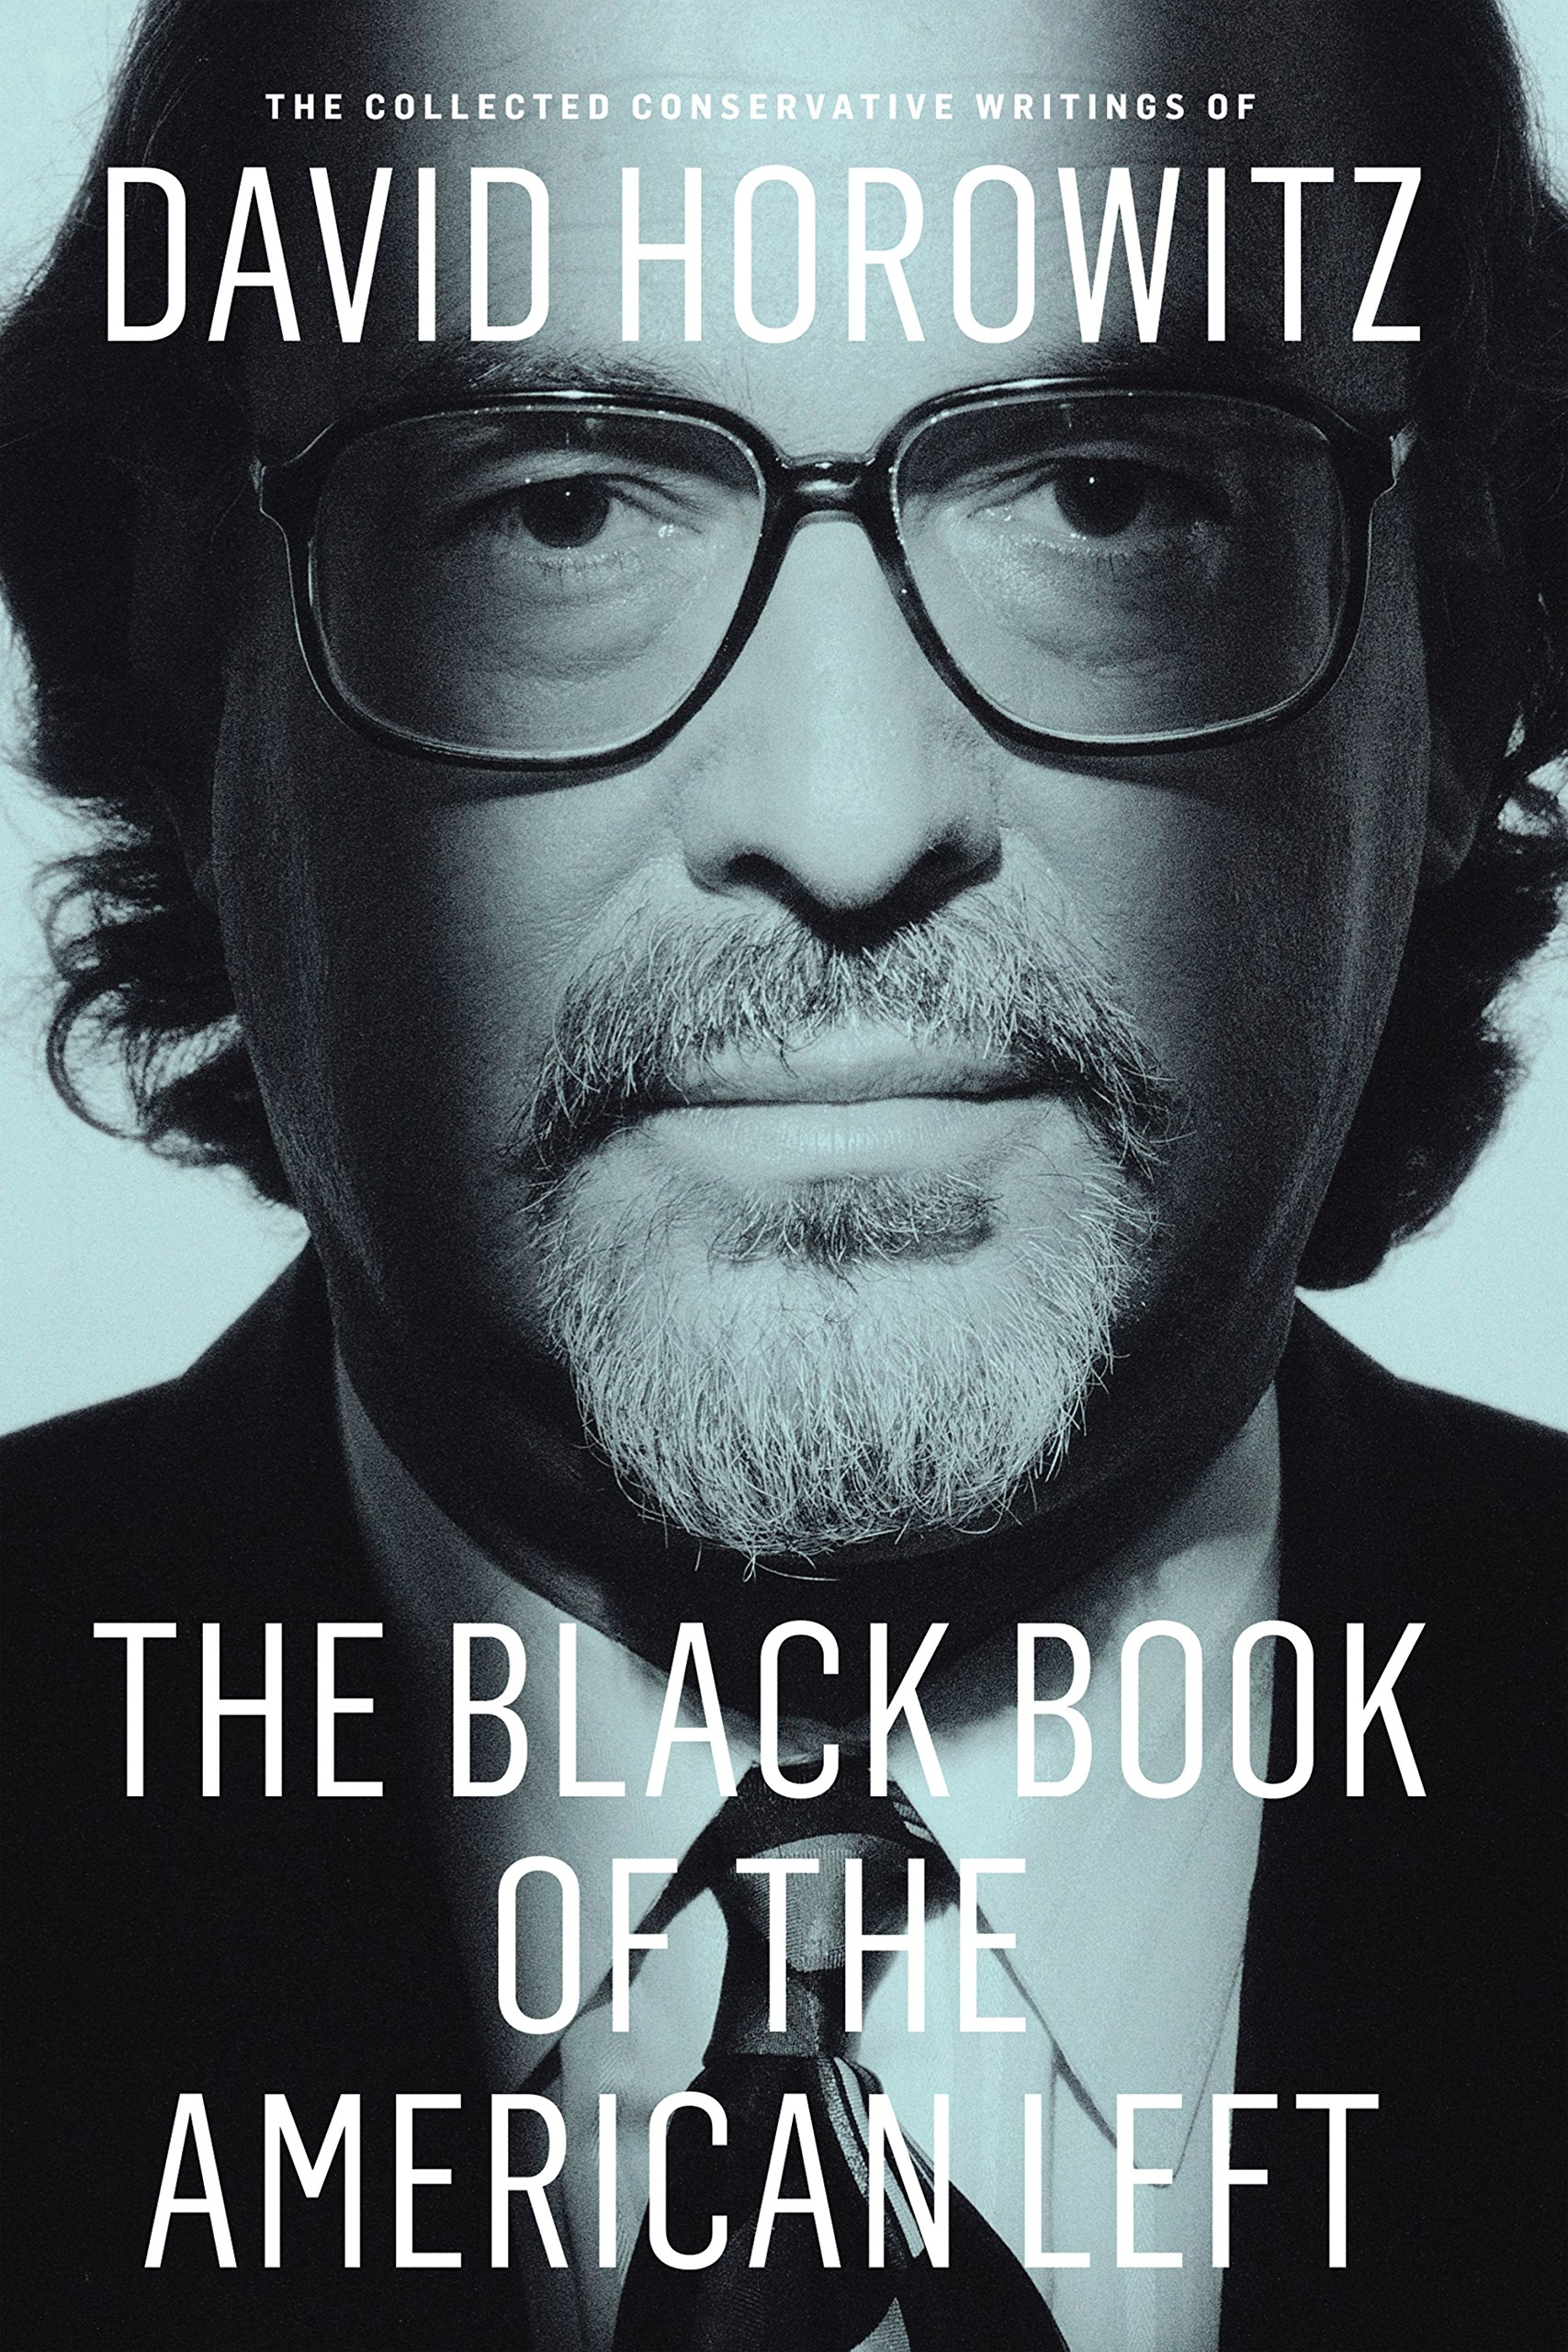 Read Online The Black Book of the American Left: The Collected Conservative Writings of David Horowitz (My Life and Times) ebook